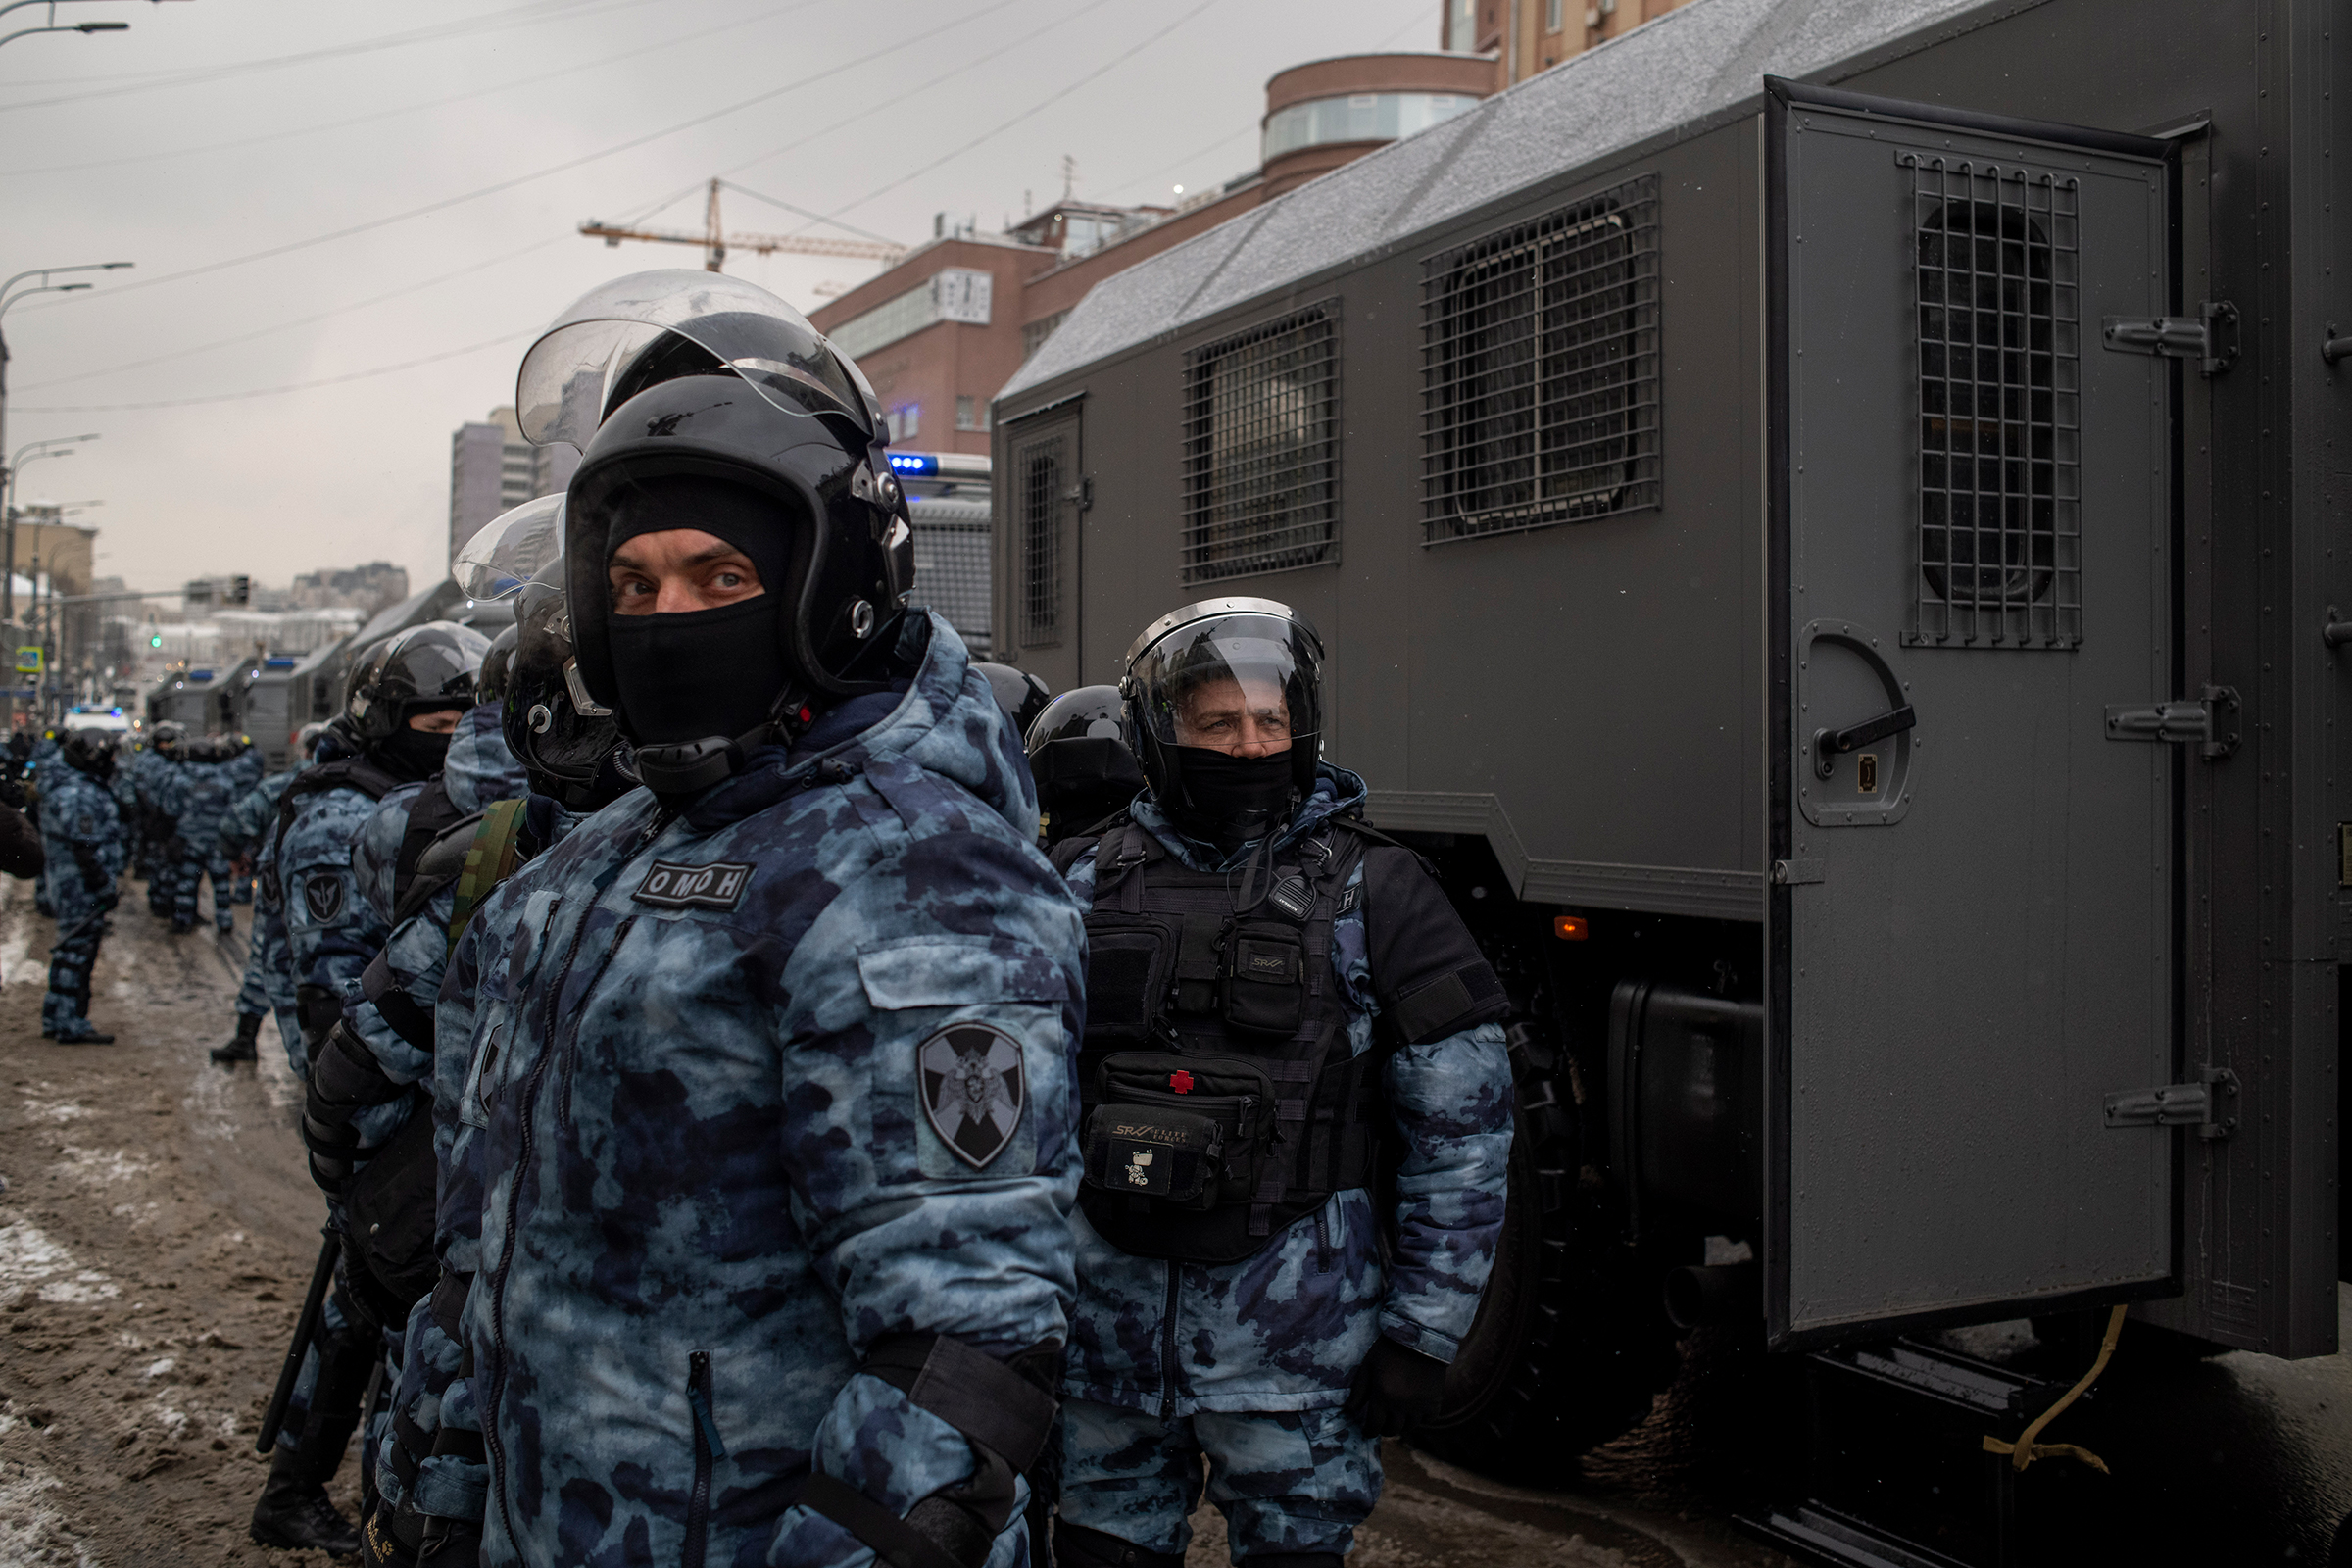 Protests swelled across Russia on Jan. 31, marking a second consecutive weekend in the wake of Alexei Navalny's arrest.